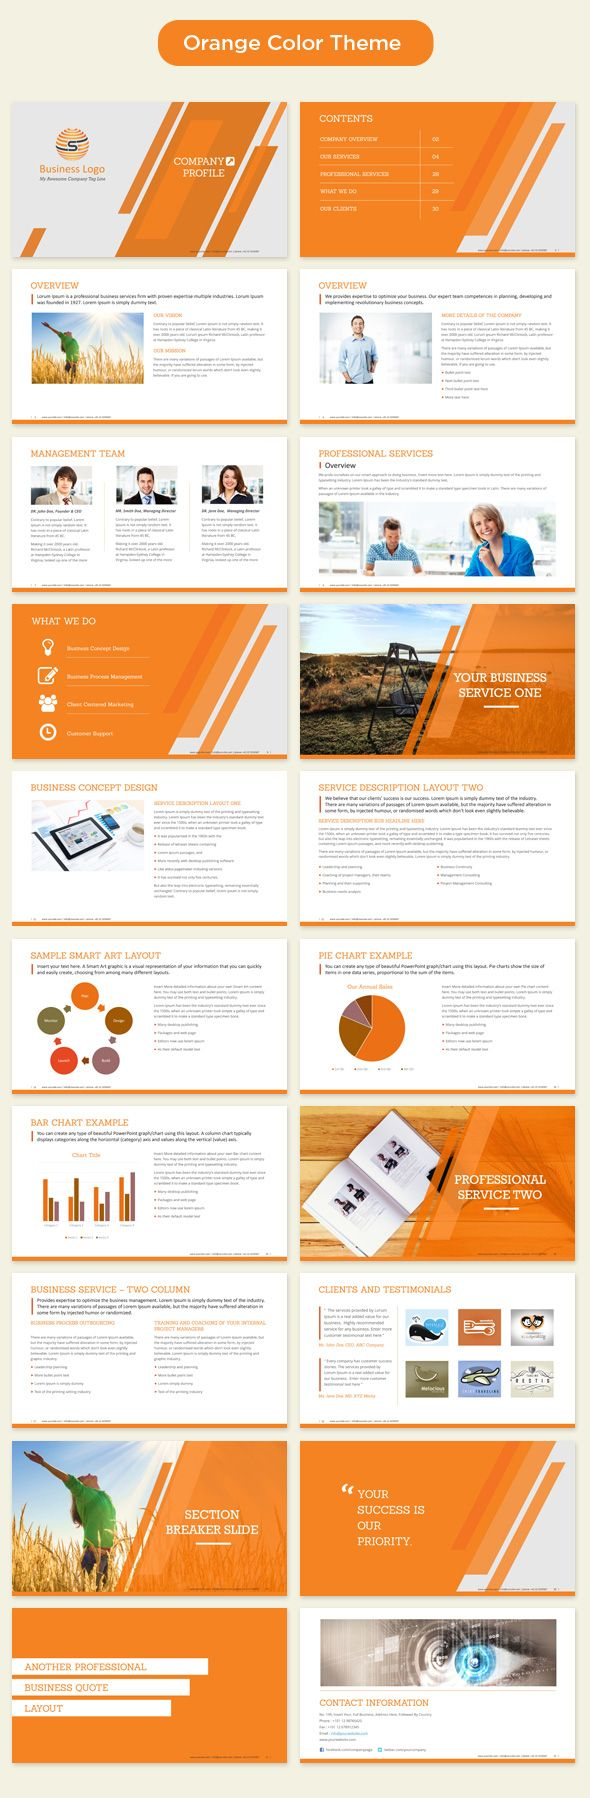 Example Of Company Profile Template Mesmerizing Company Profile Template Powerpointtemplate Is Available In 4 Uni .